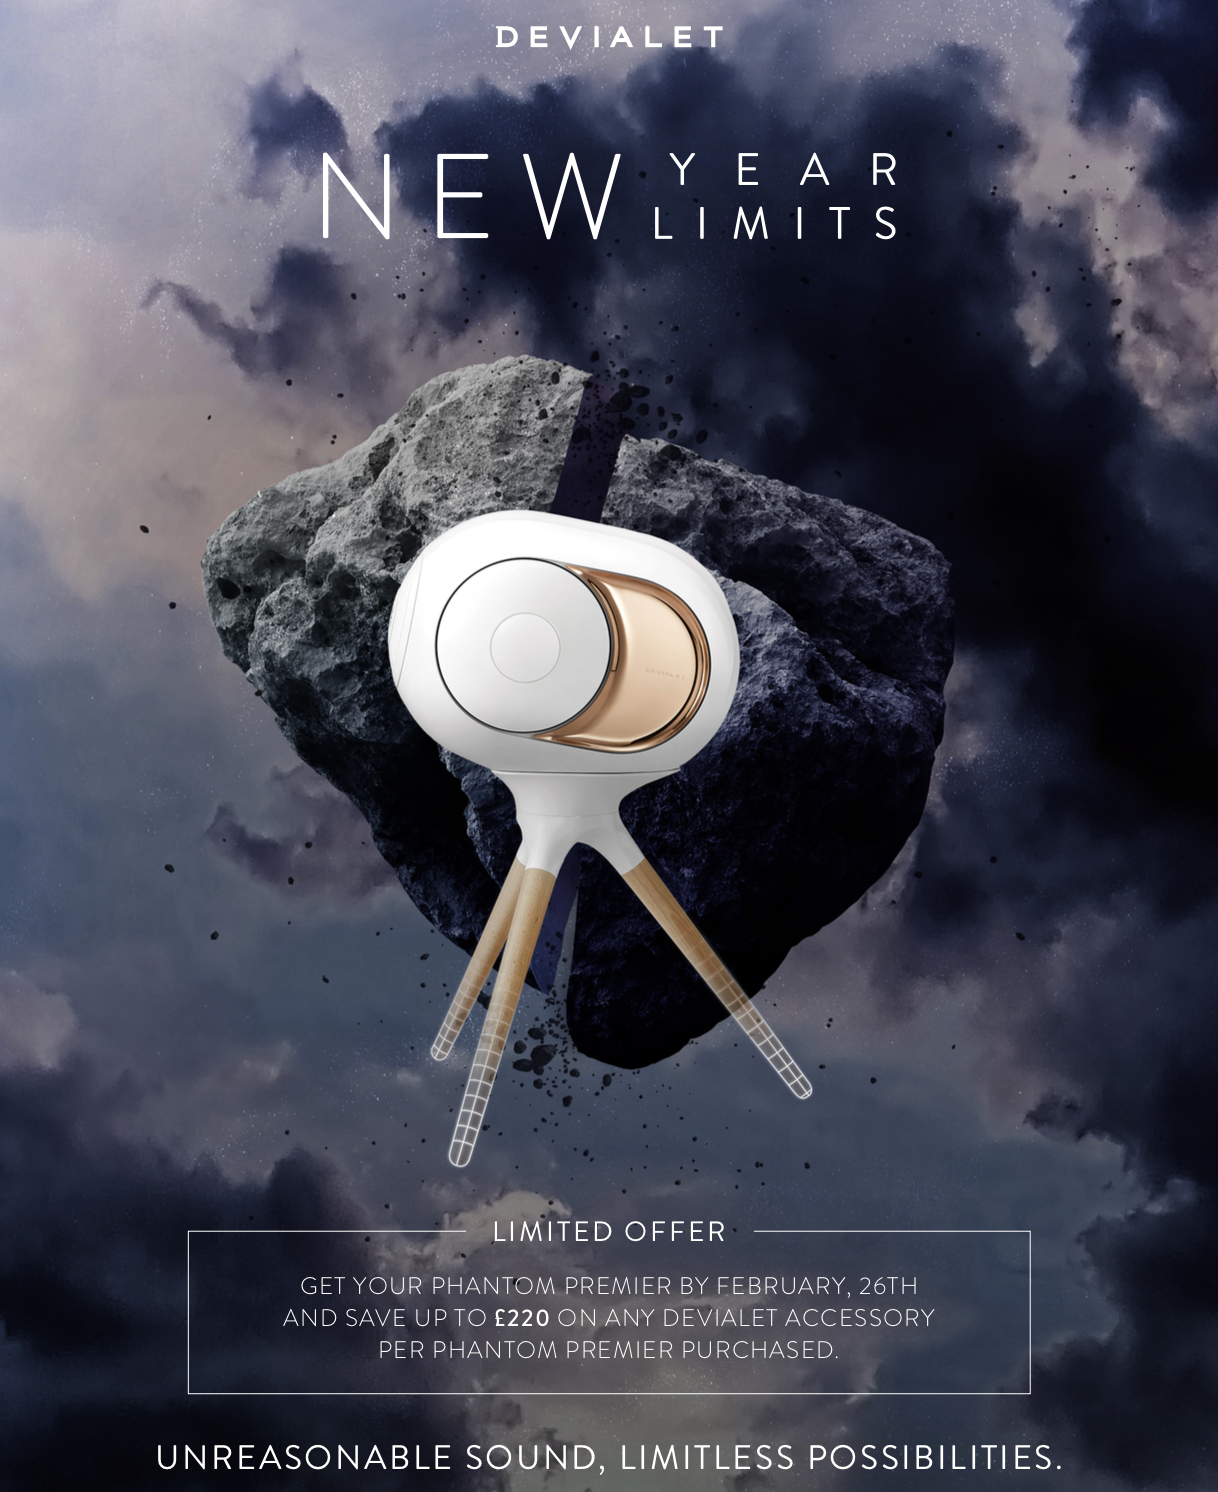 Devialet New Year Limits.png